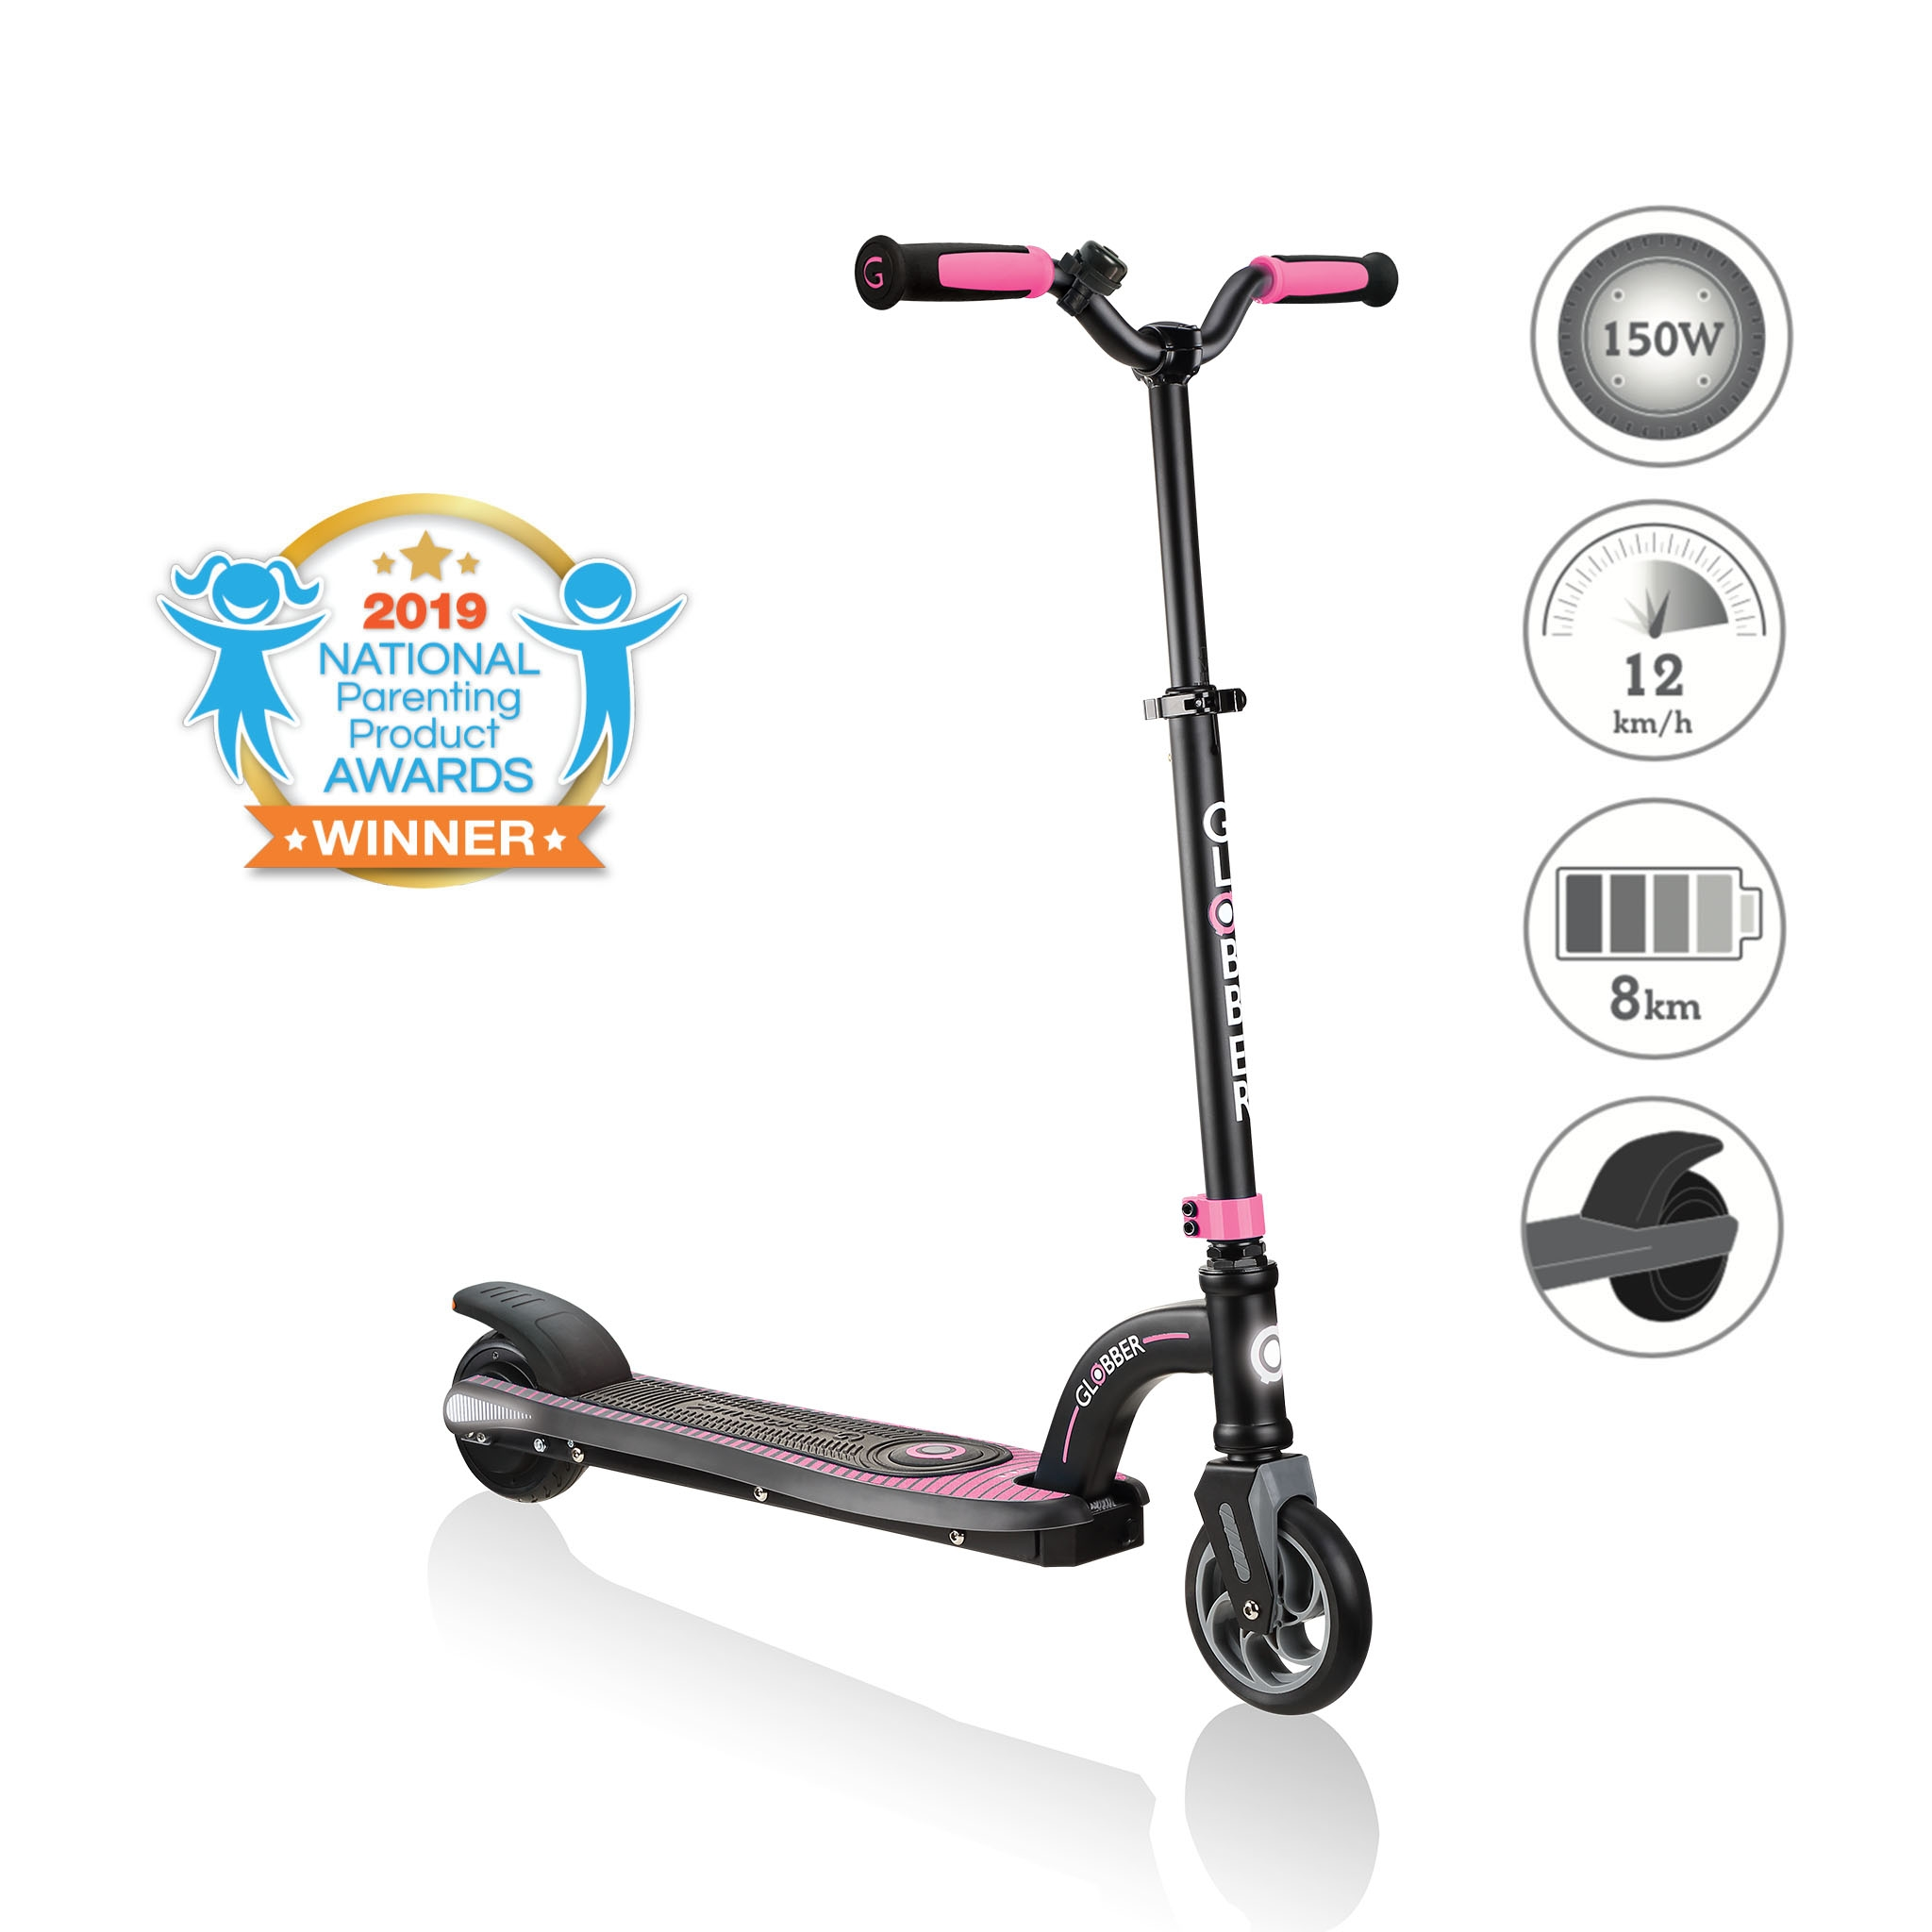 Globber-ONE-K-E-MOTION-10-best-electric-scooter-for-kids-aged-8-to-14- 3 0